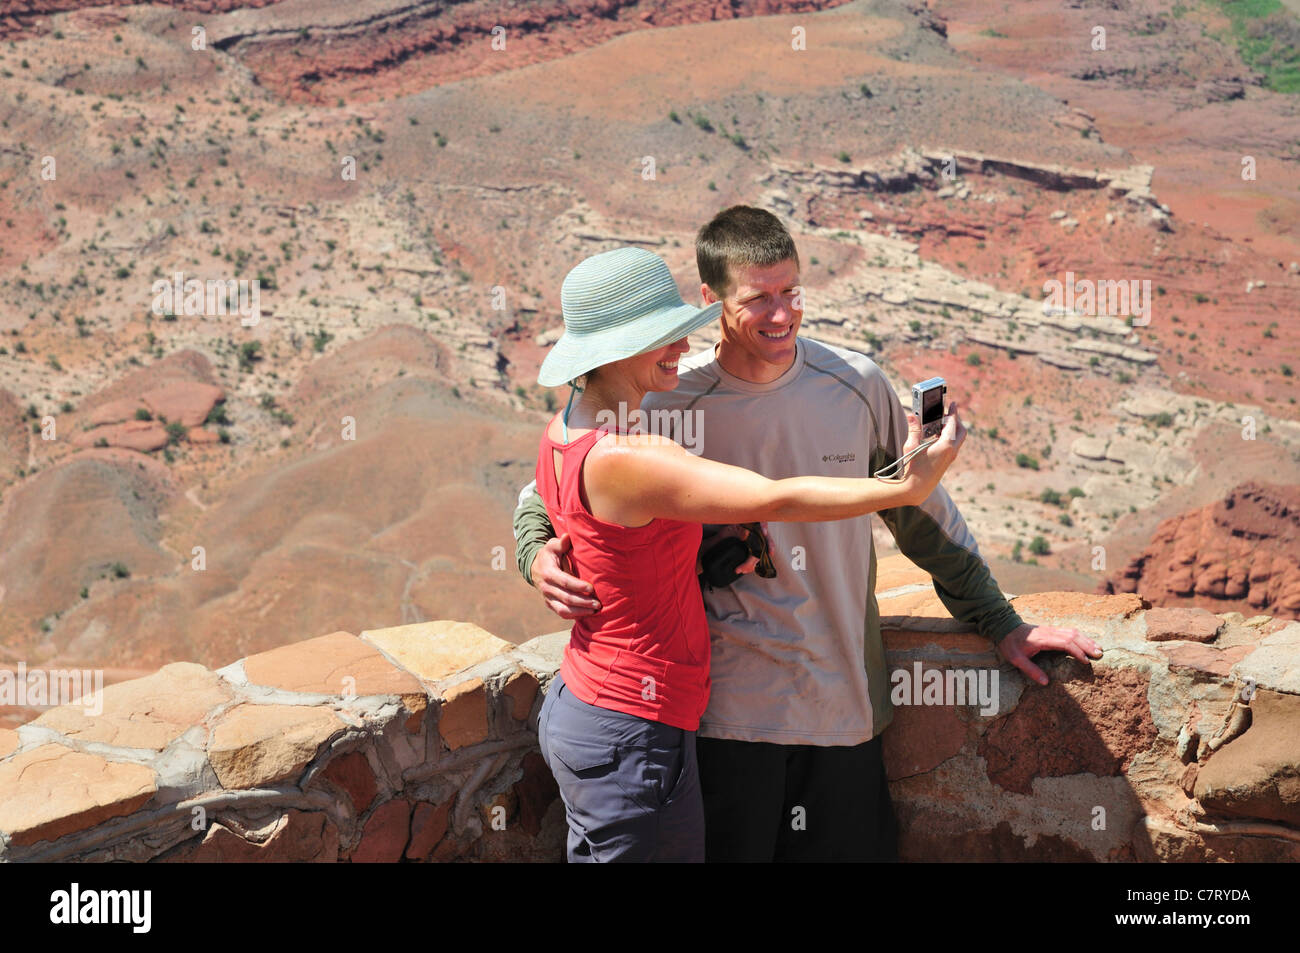 A couple photographs themselves at an overlook in Dead Horse Point State Park - Stock Image